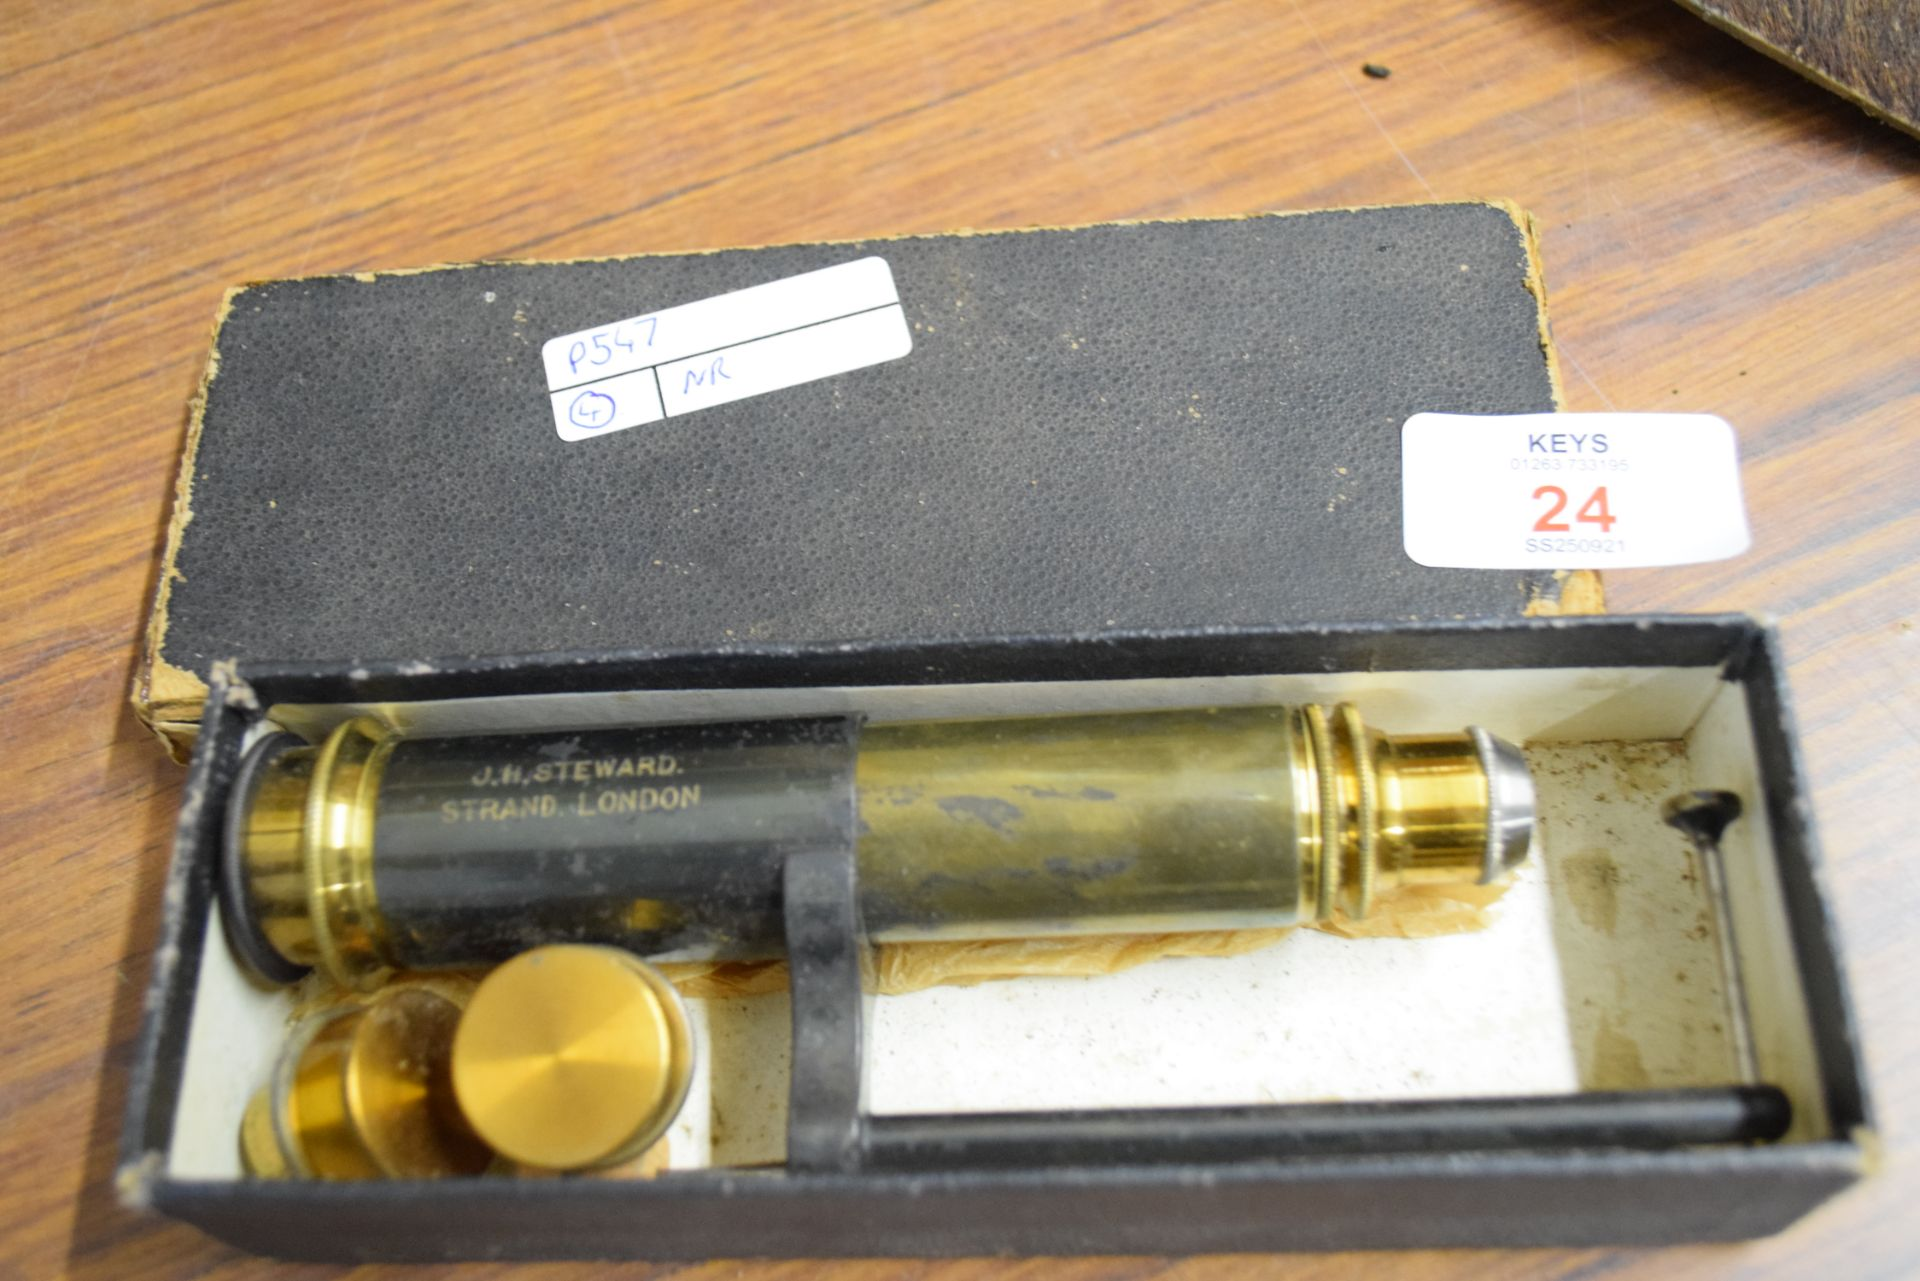 J H Steward, Strand, London, small brass travelling microscope and lenses, 16cm high